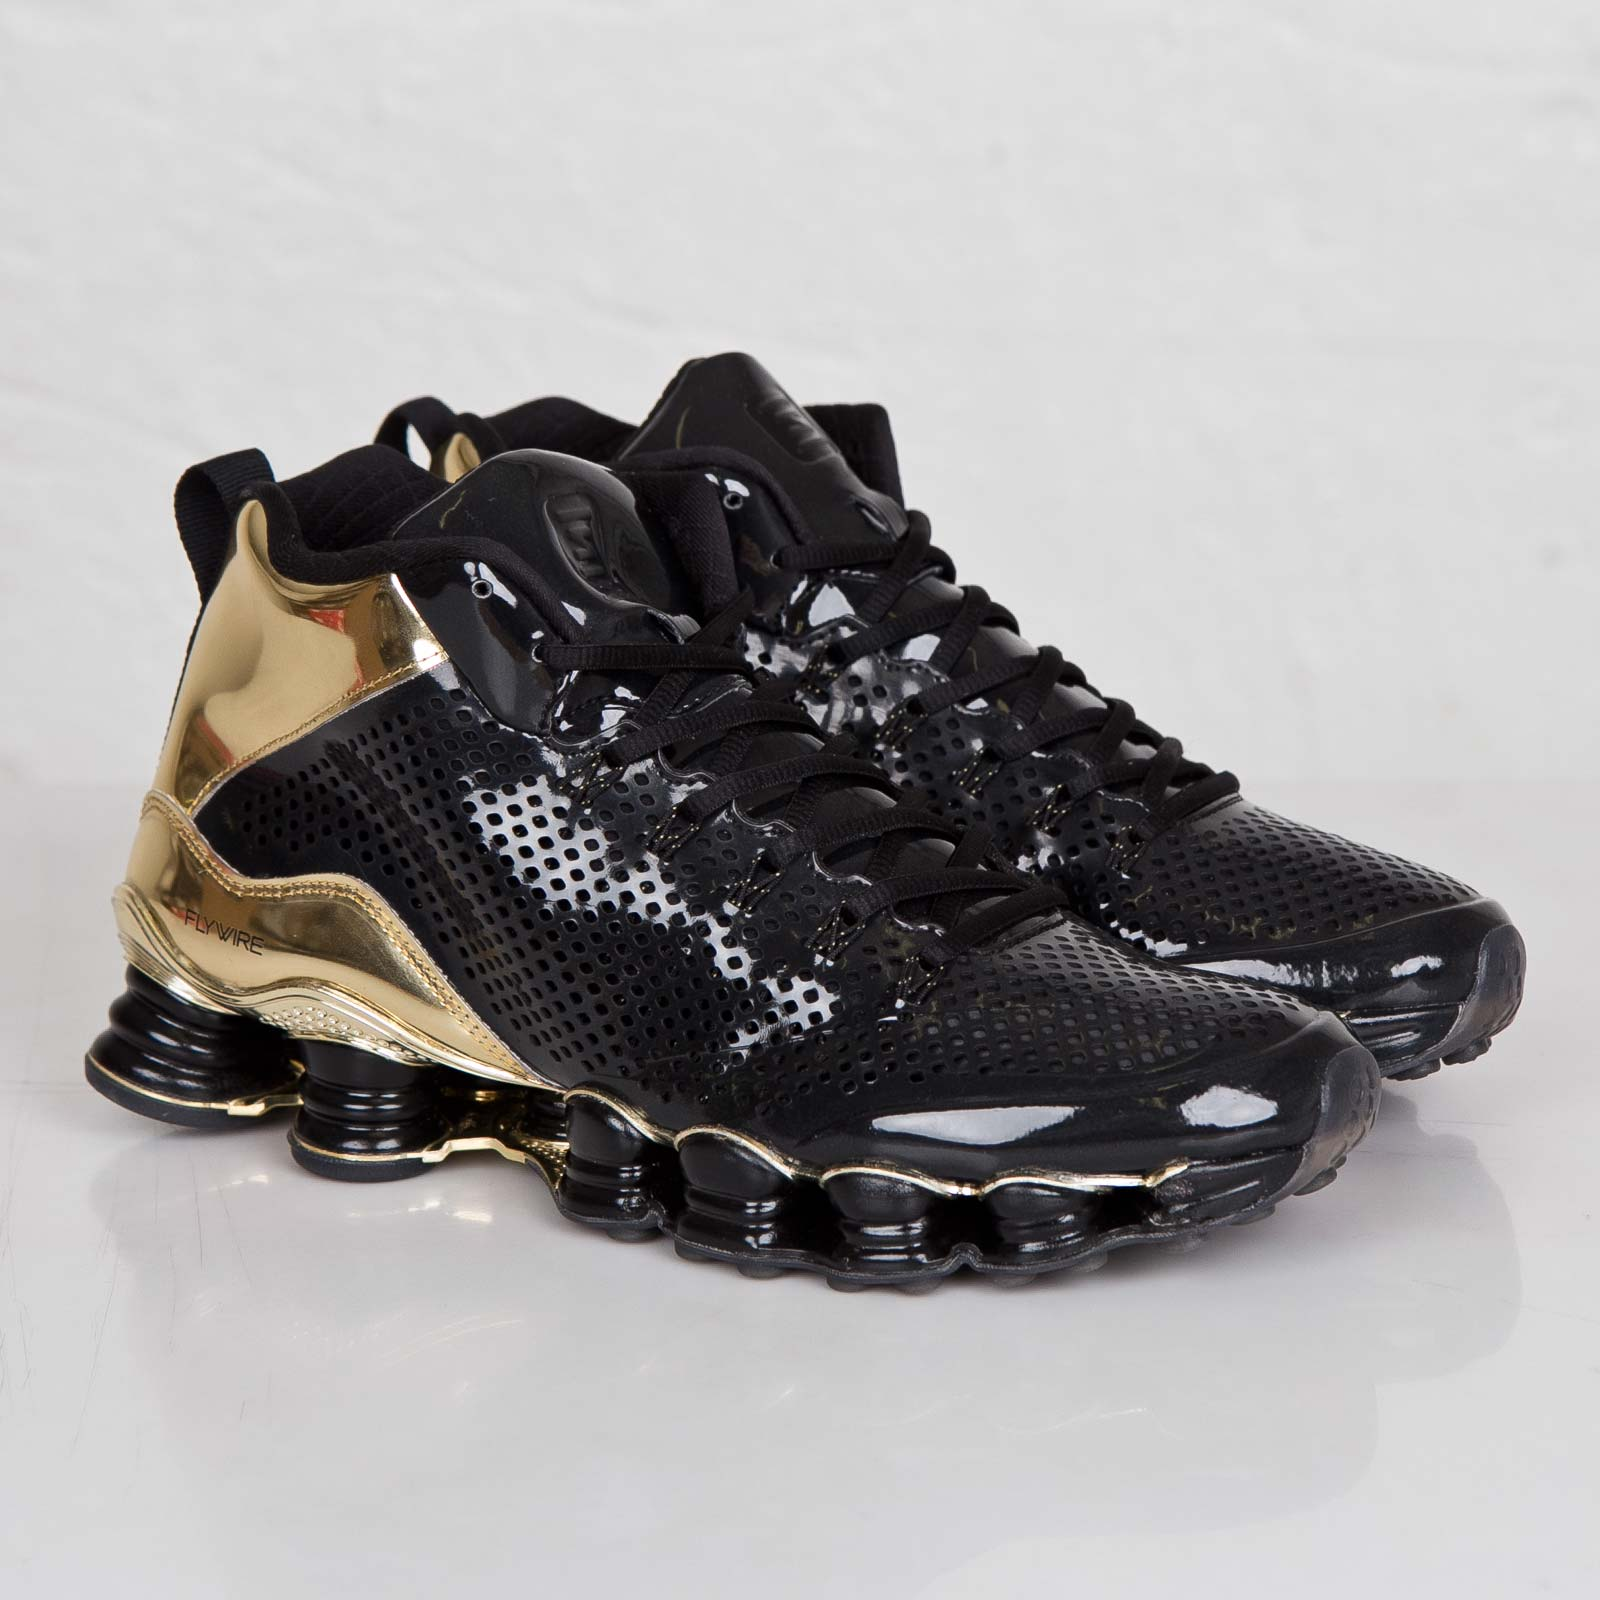 official photos 9e78b c7fdf Nike Shox TLX Mid SP - 677737-002 - Sneakersnstuff | sneakers ...